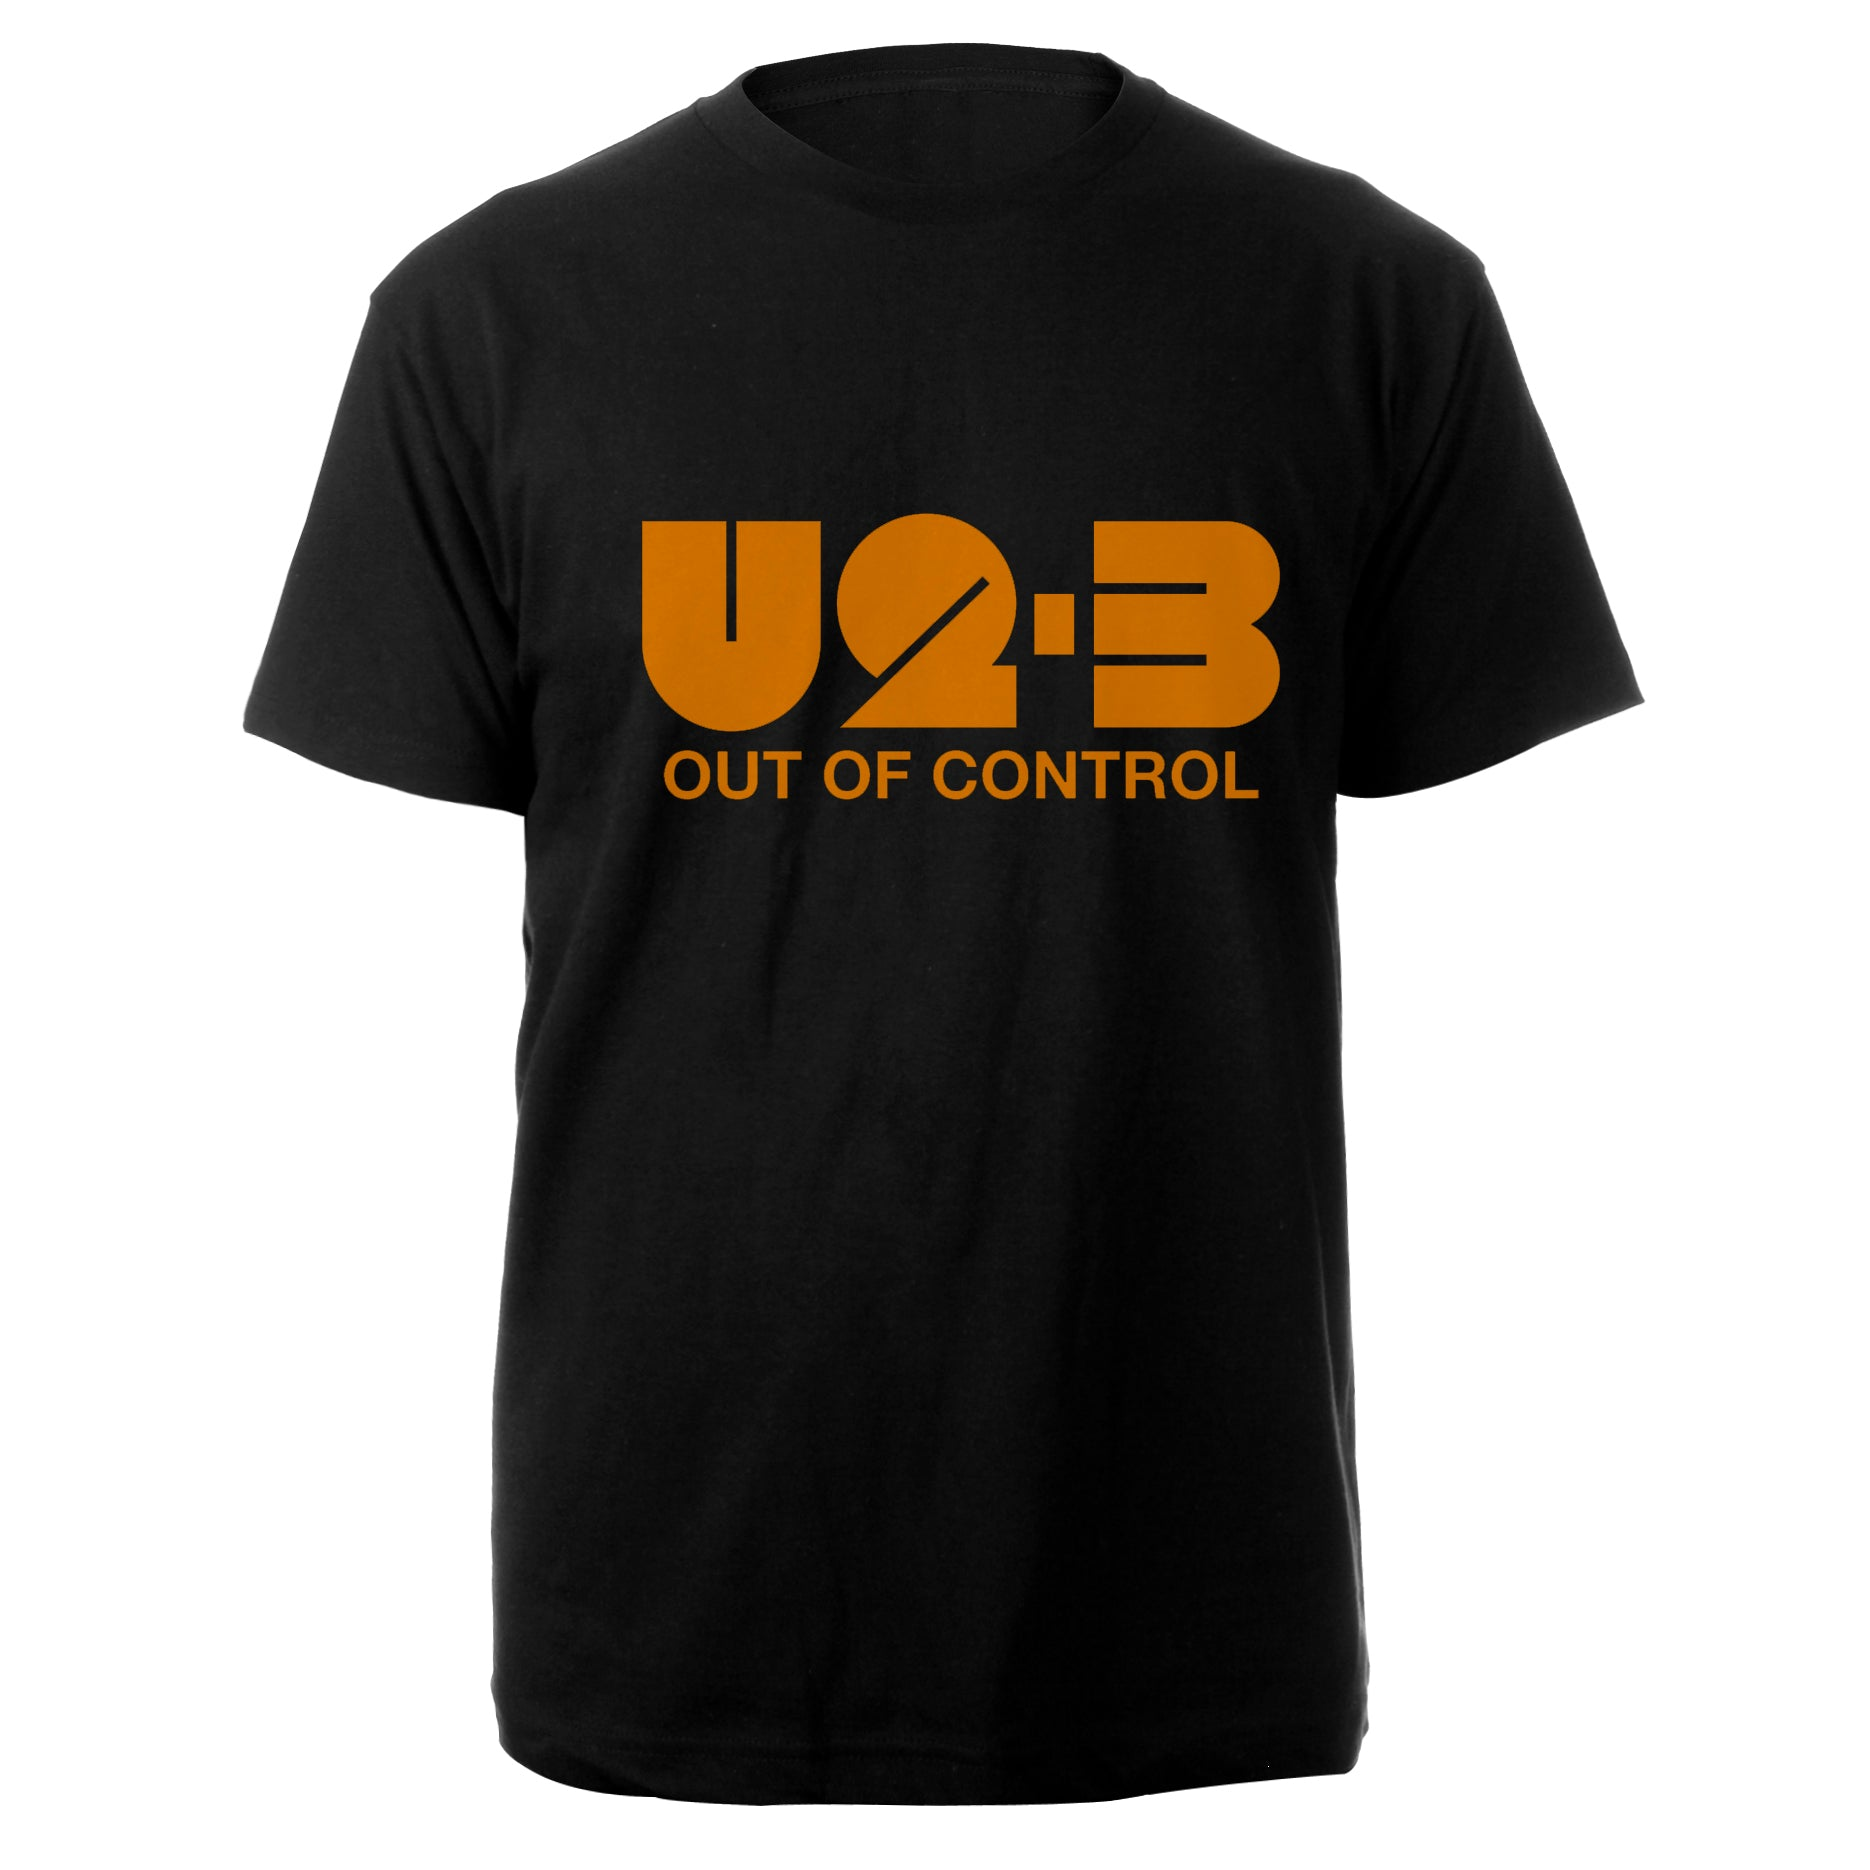 U2-3 Out of Control Black T-Shirt